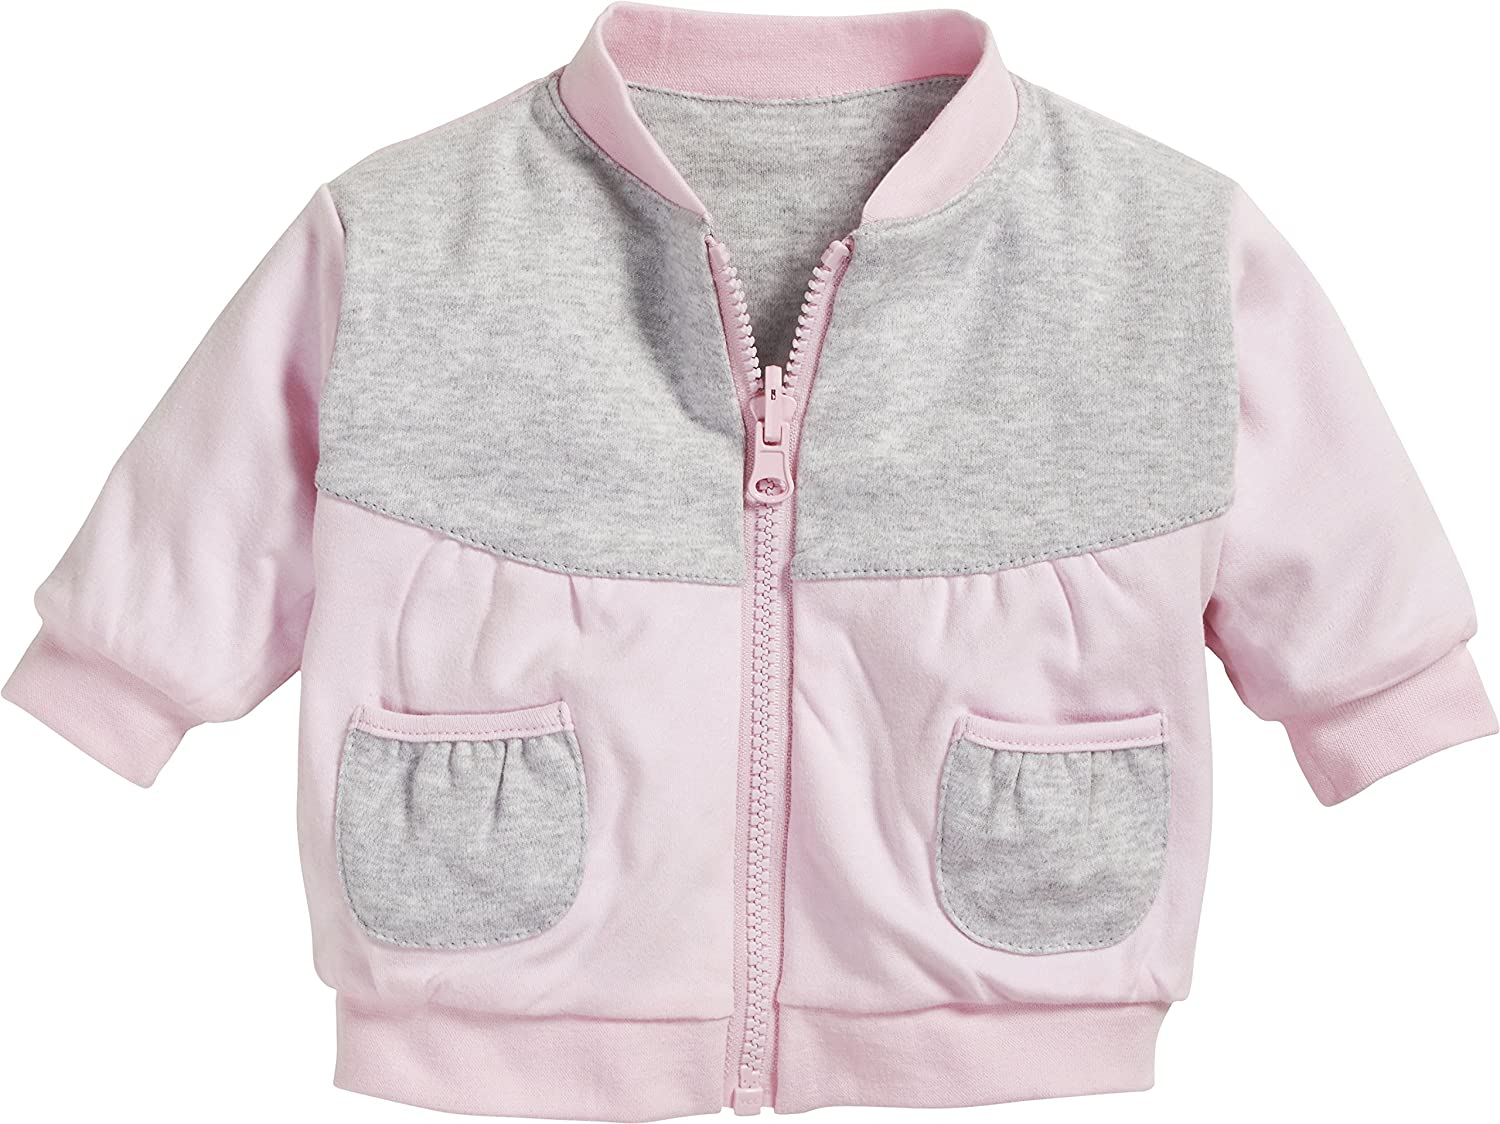 Playshoes Schnizler Baby Girls Reversible Jacket Unicorn